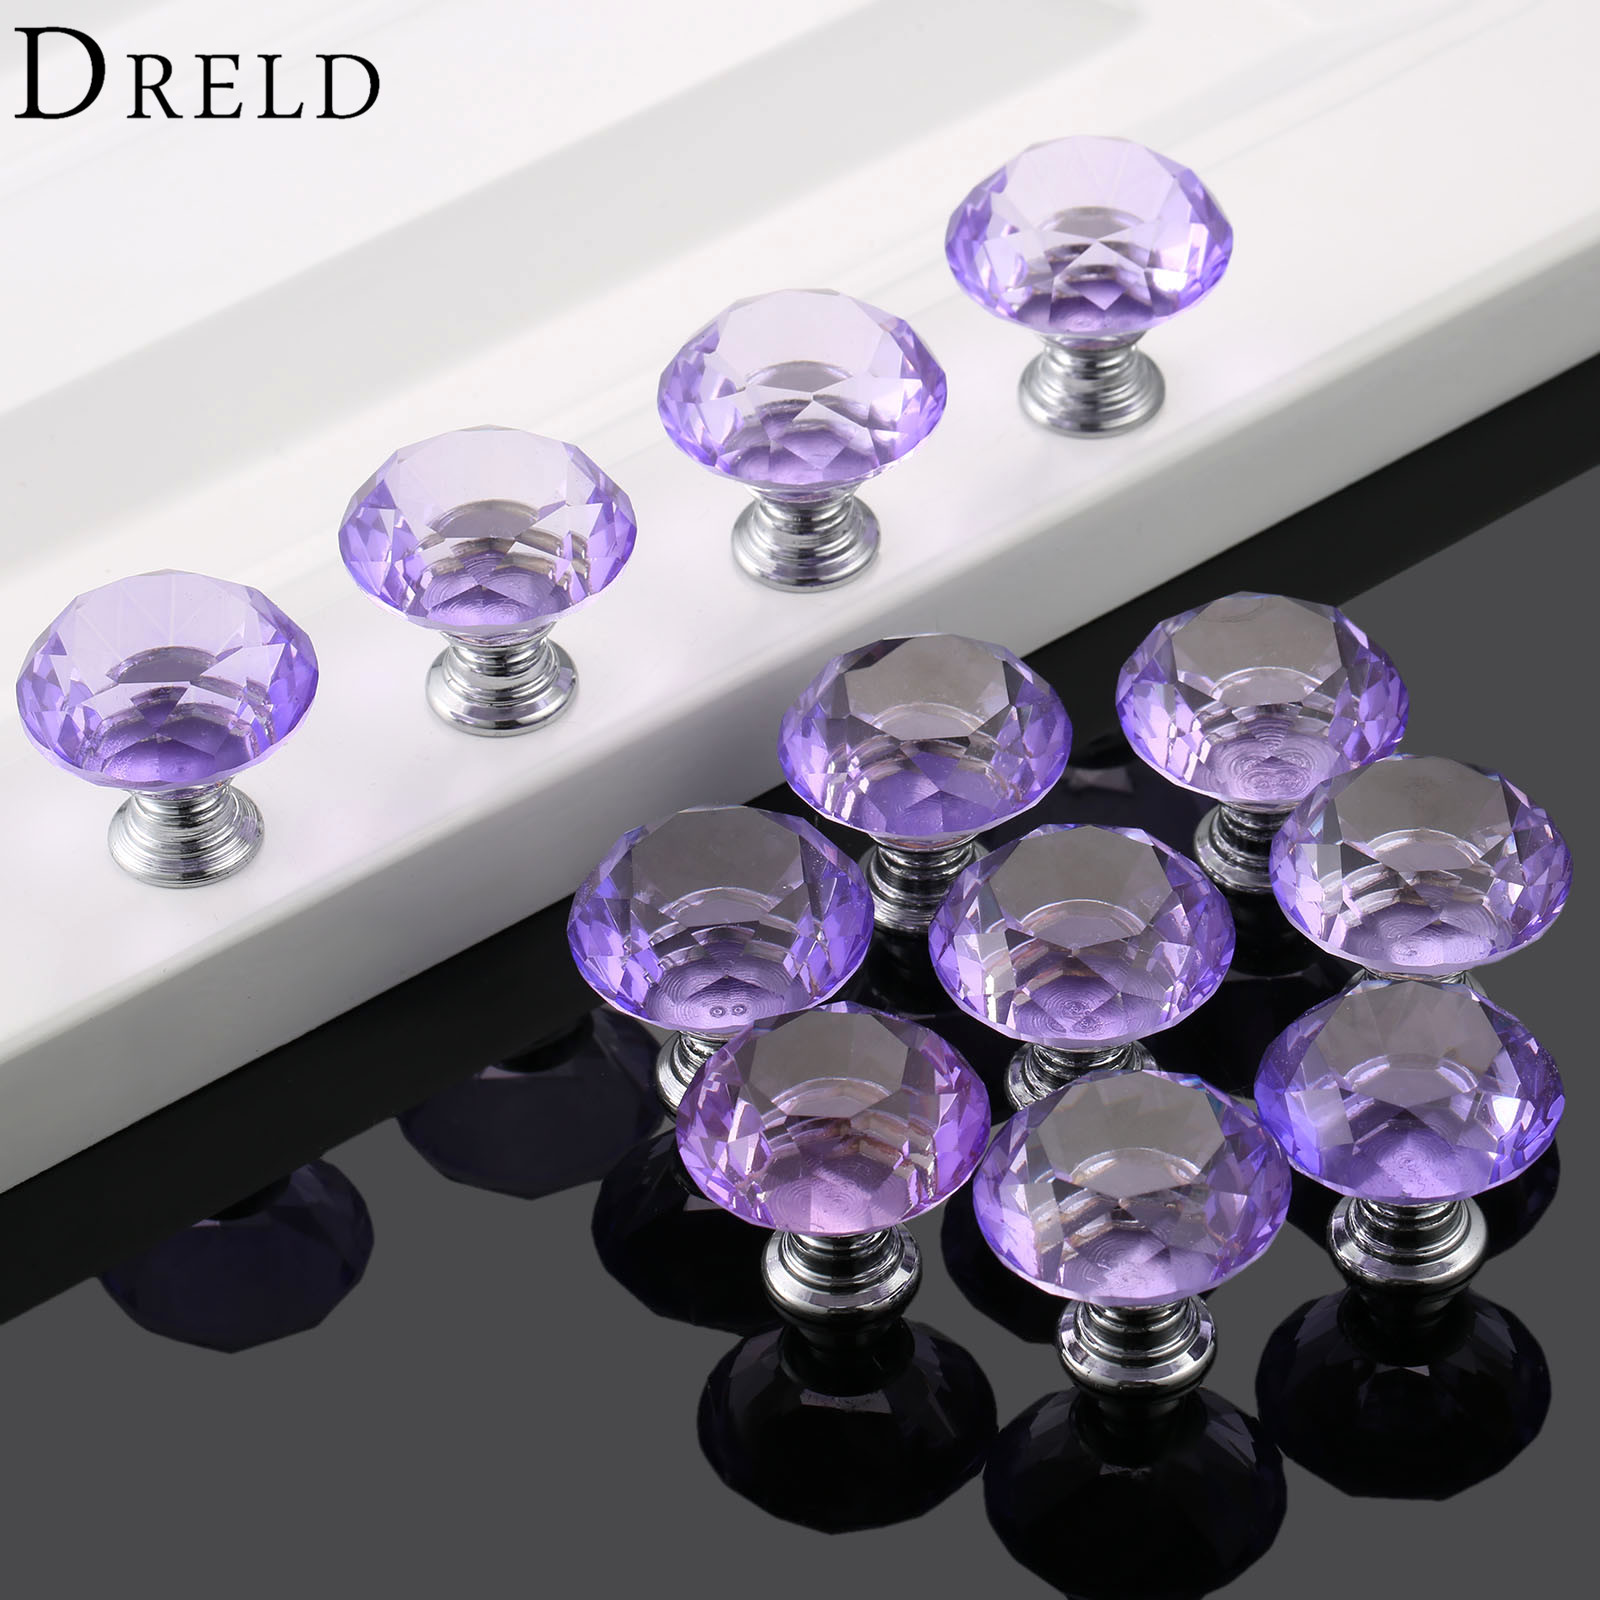 DRELD 12PCS 30mm Diamond Crystal Glass Purple Door Pull Handle Wardrobe Cabinet Knobs and Handles Kitchen Furniture Handles furniture drawer handles wardrobe door handle and knobs cabinet kitchen hardware pull gold silver long hole spacing c c 96 224mm